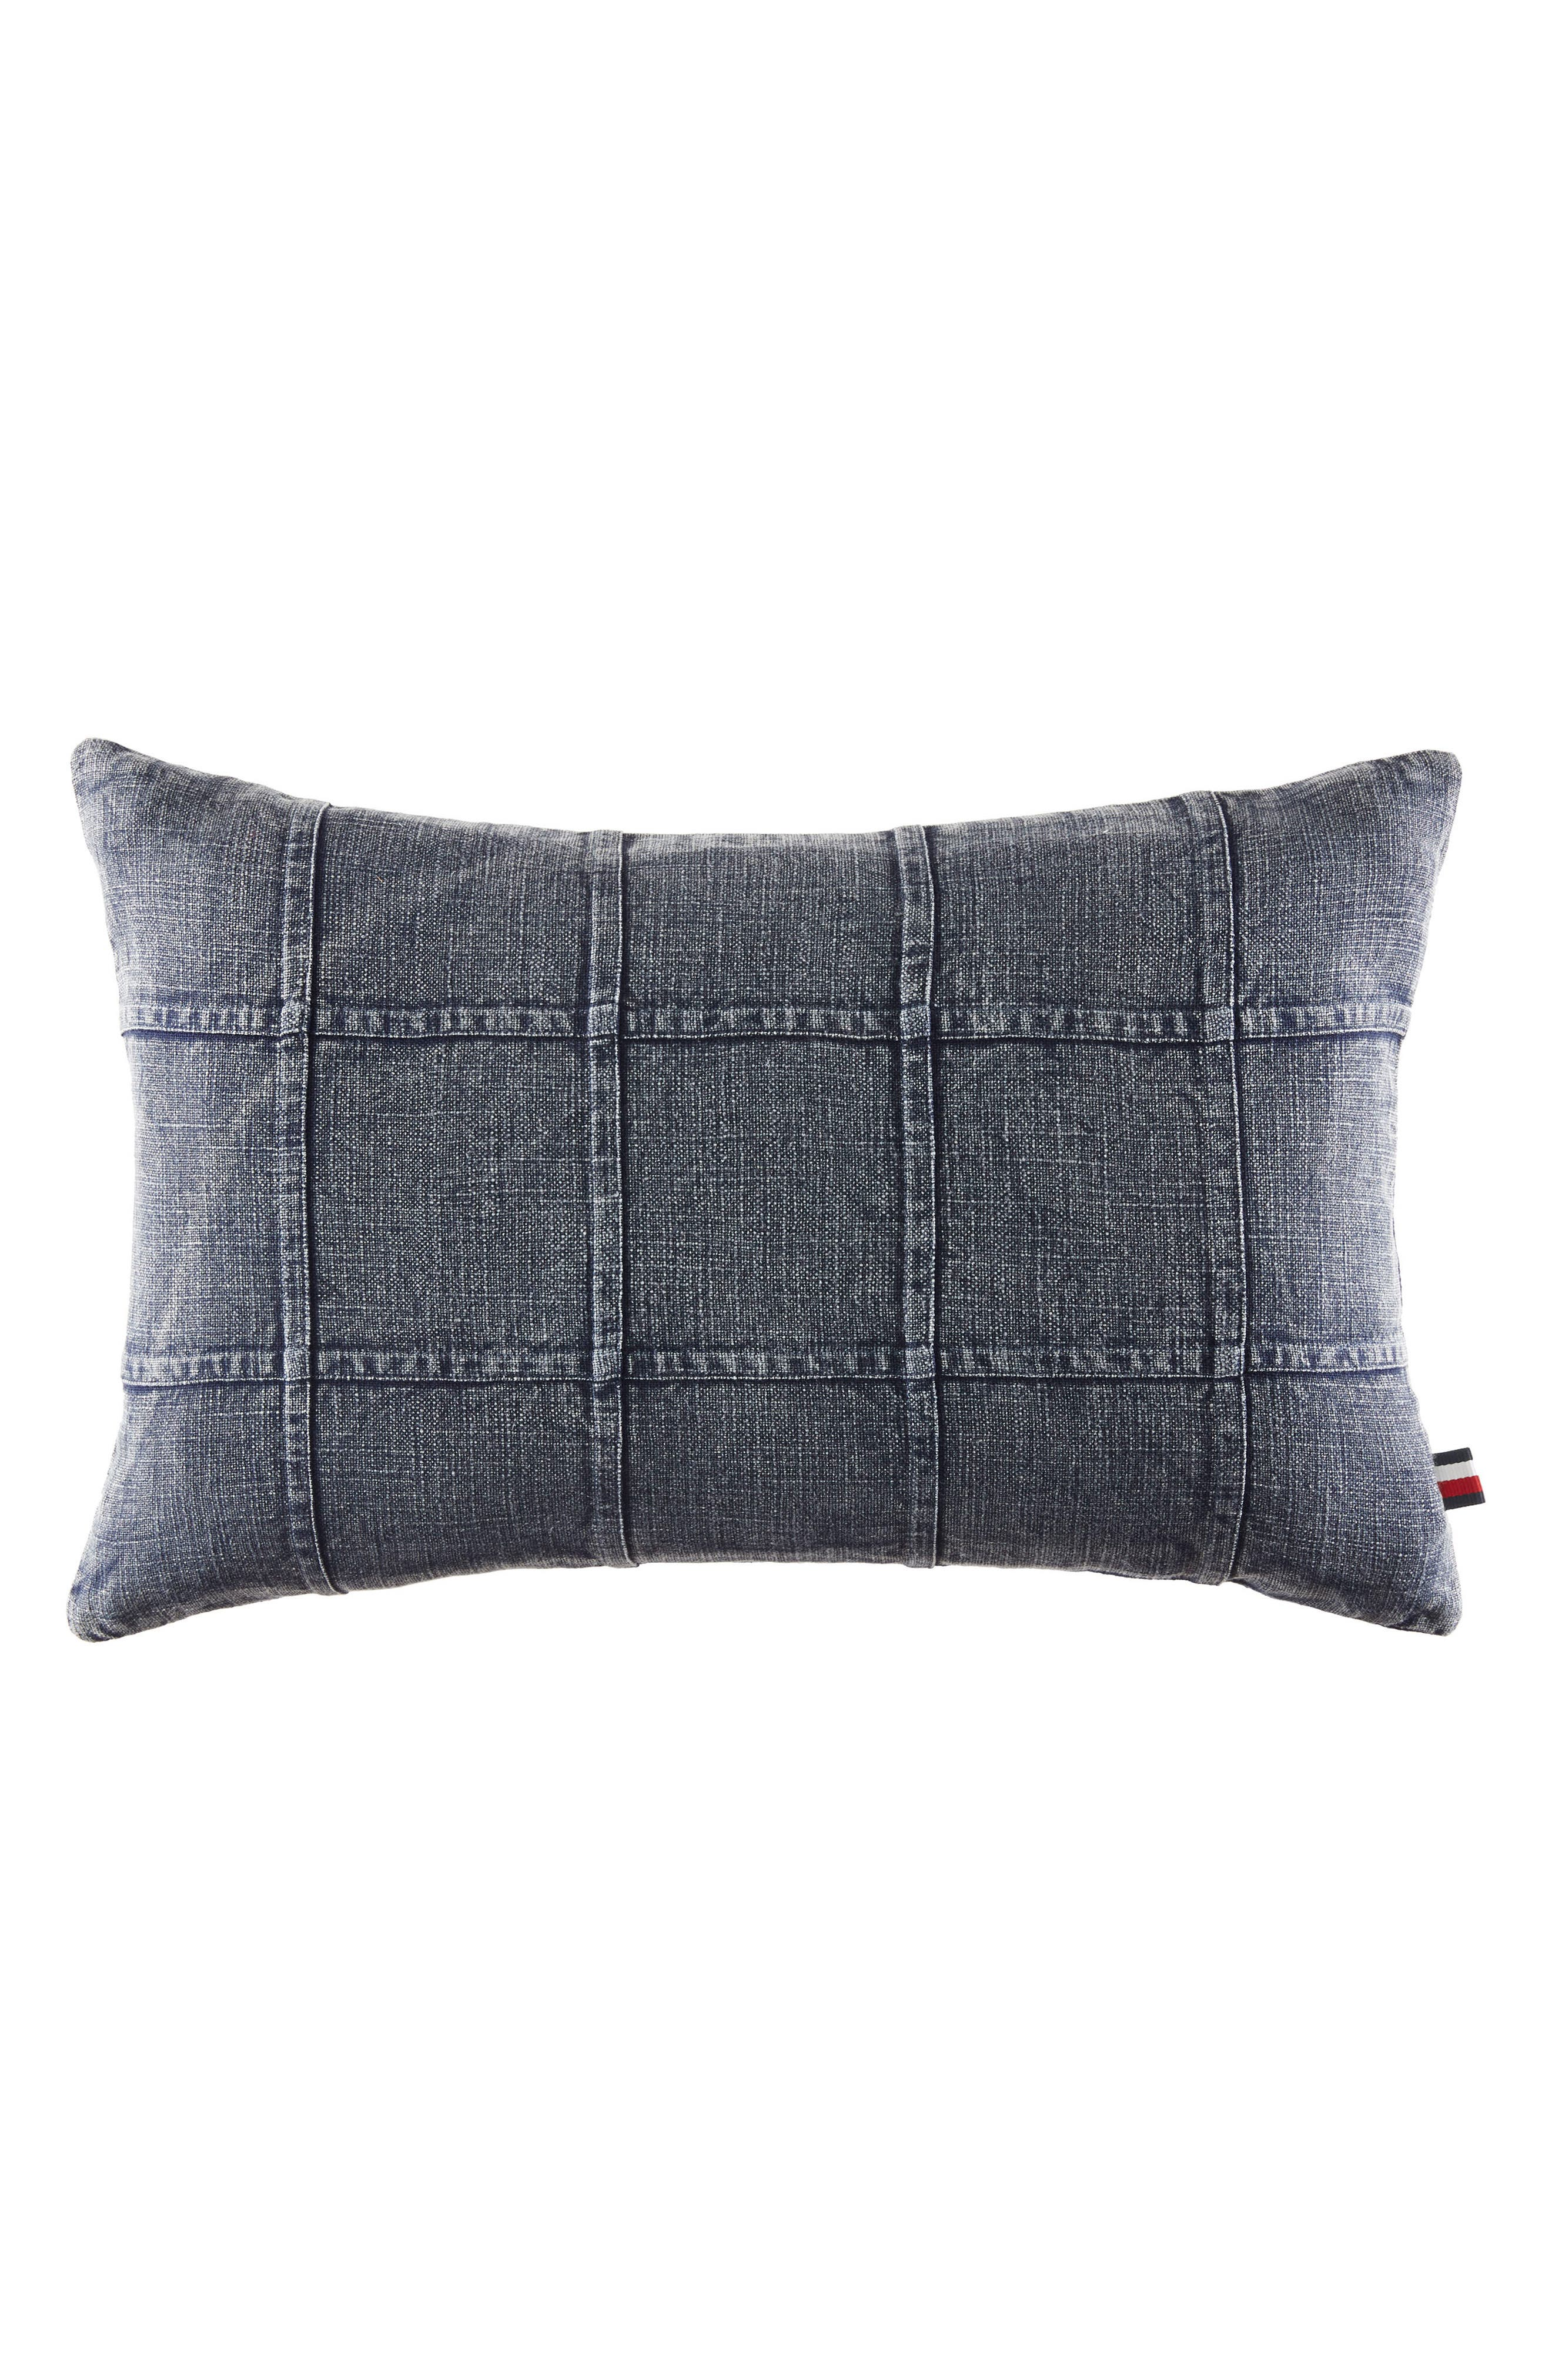 Tommy Hilfiger Dusted Indigo Denim Accent Pillow